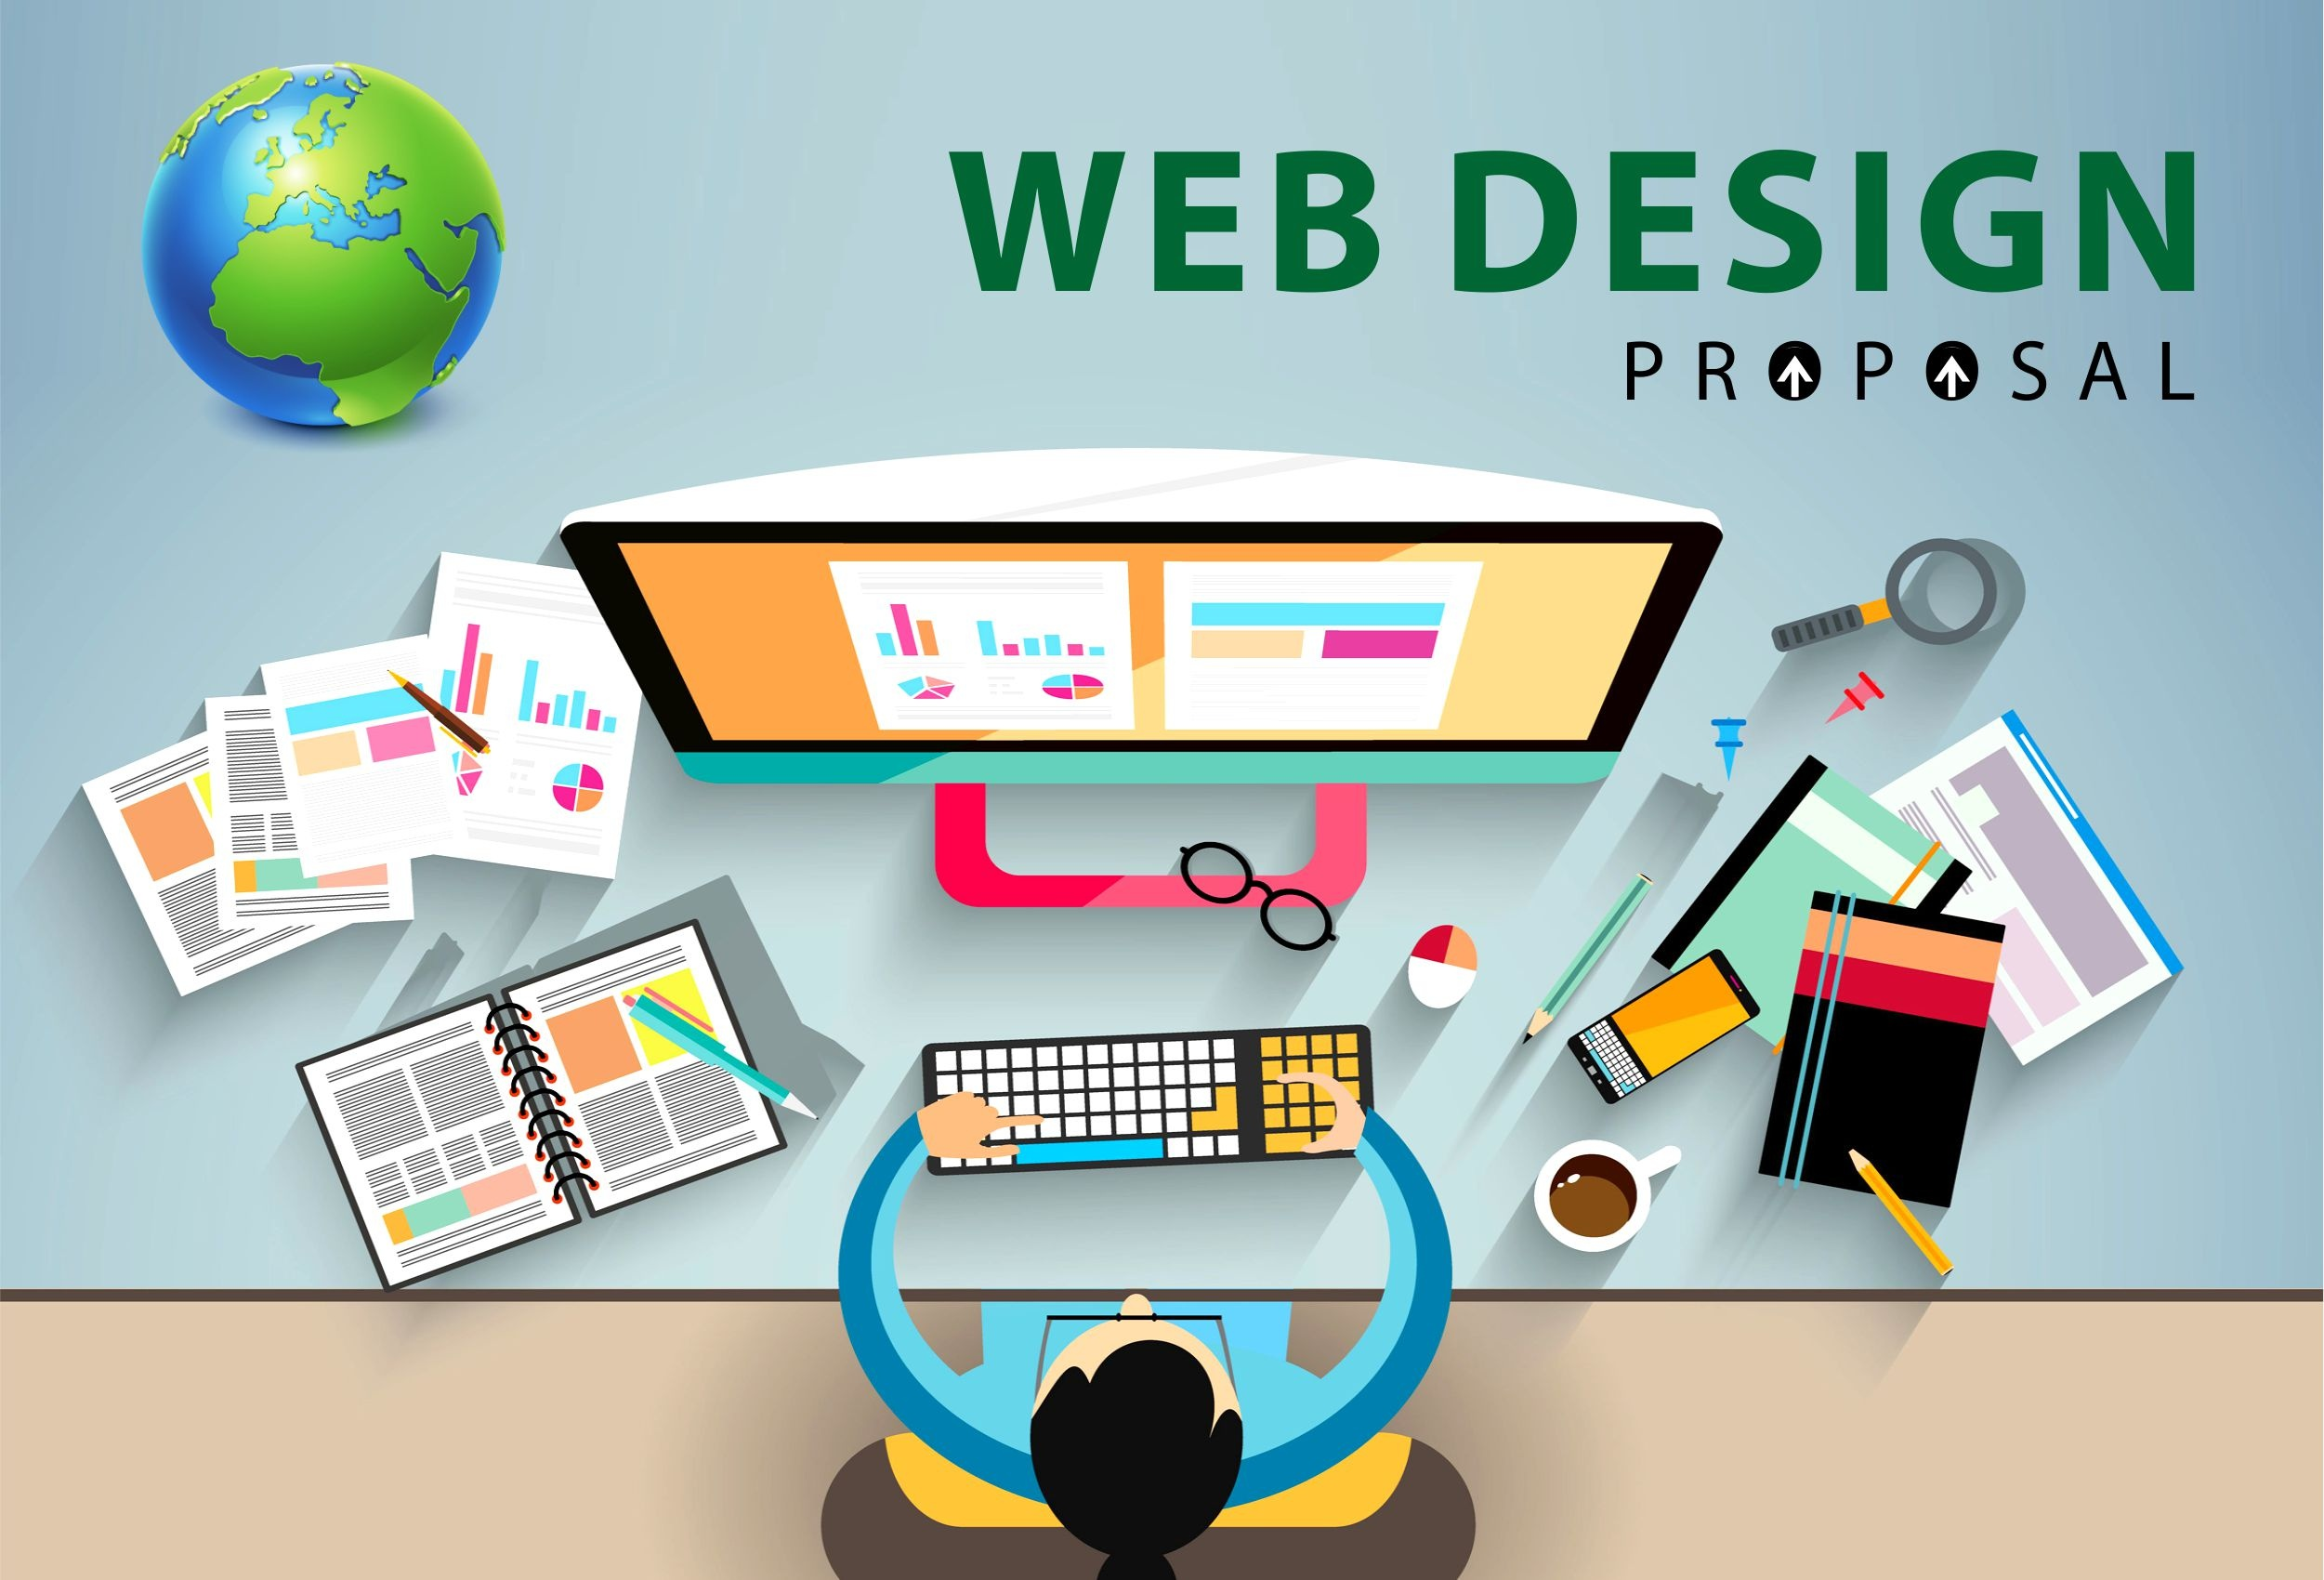 Where can I find website design proposal template? - Quora